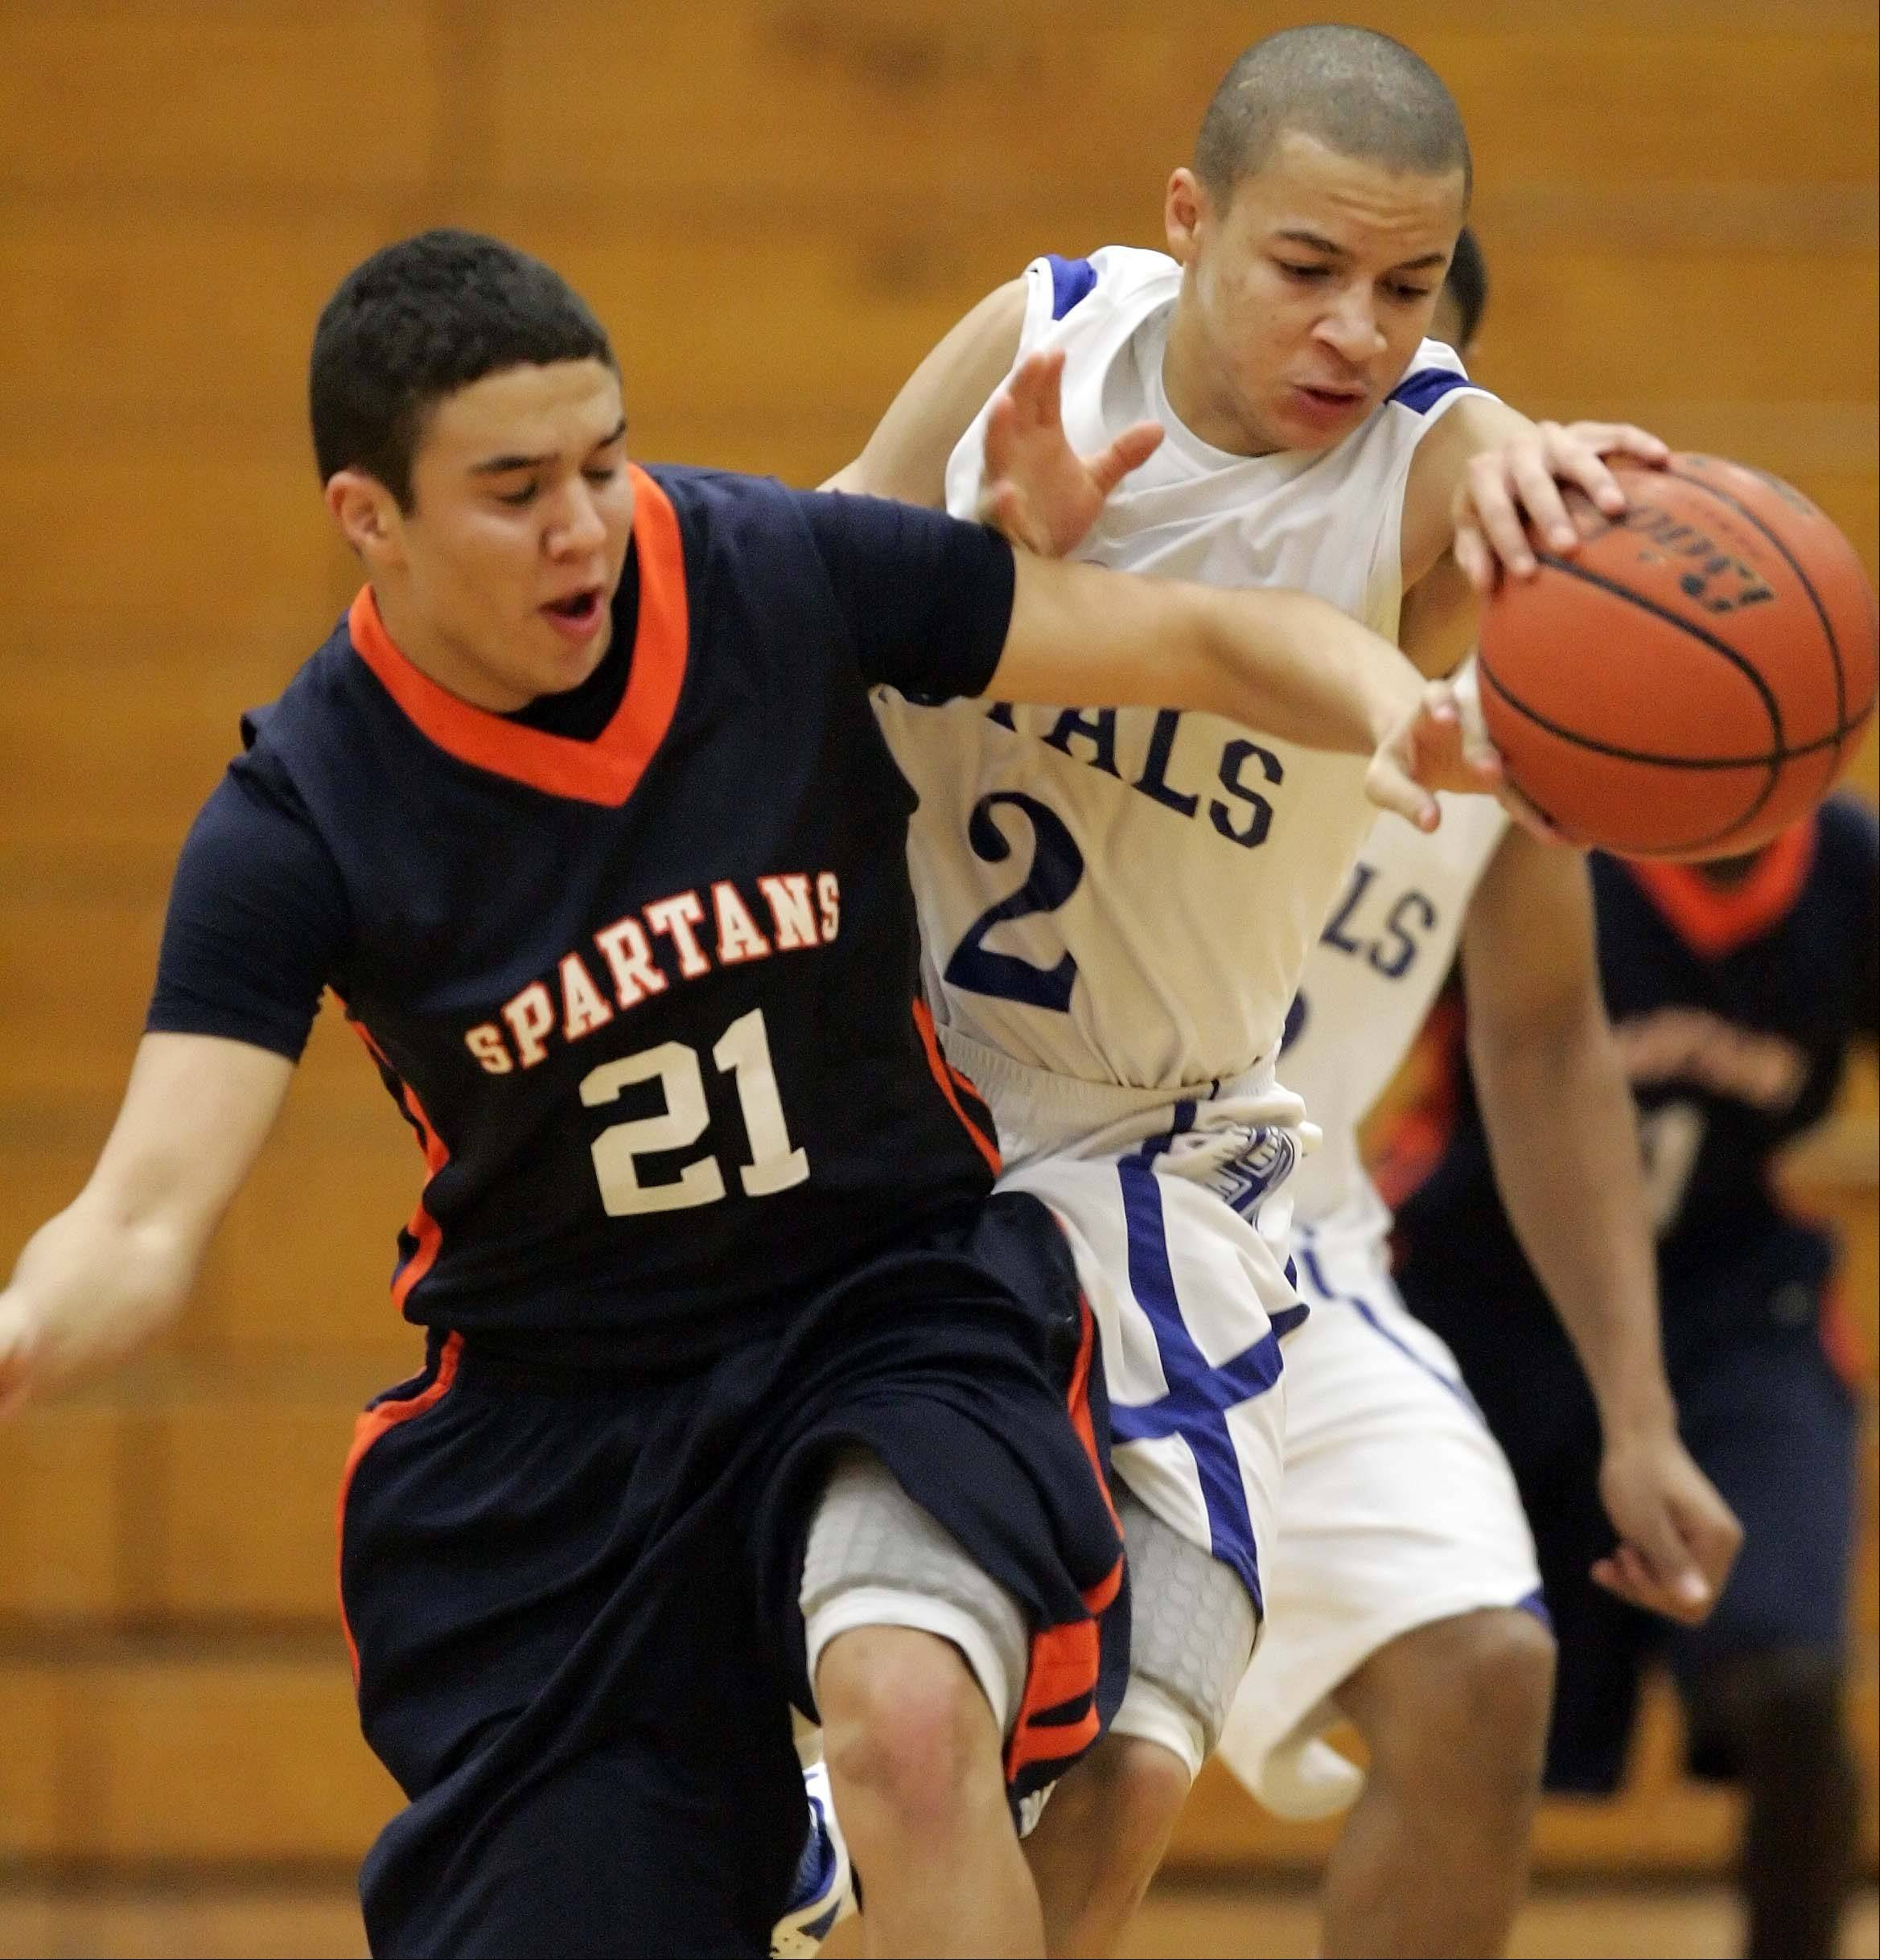 Romeoville guard Jake Bambule, 21, and Larkin guard Derrick Streety, 2, battle for the ball at the Elgin Boys basketball tournament Wednesday.